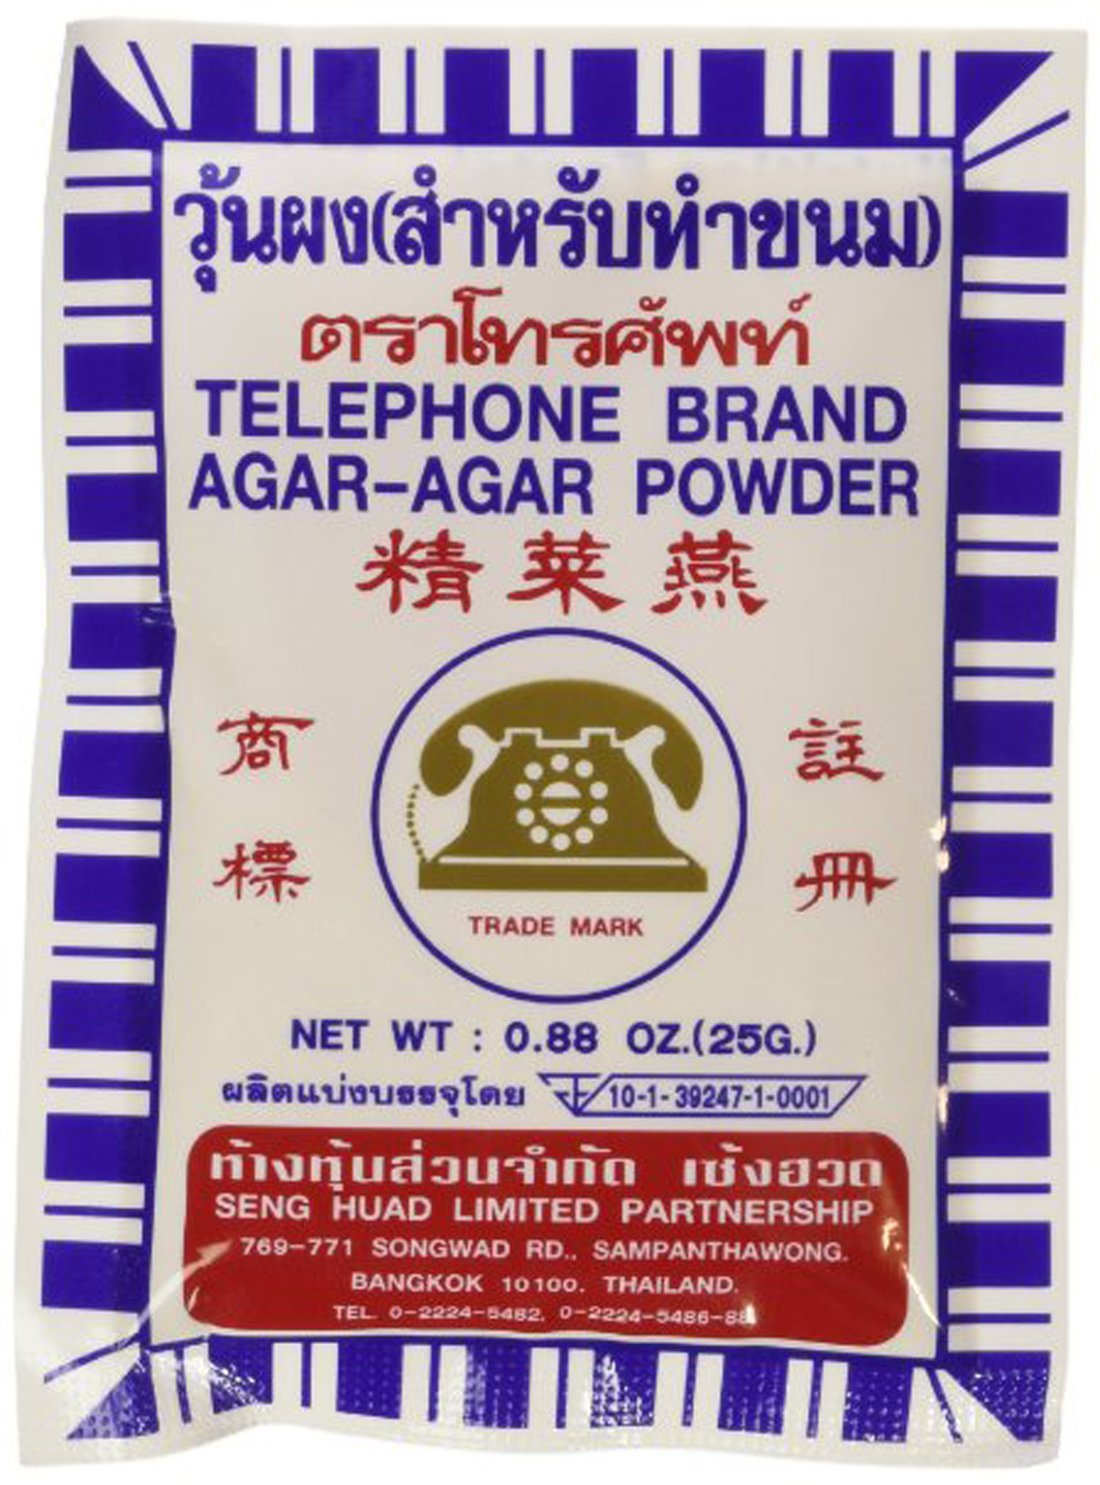 Telephone Product of Thailand Agar Pack Super mart special price Powder Ounce 0.88 5